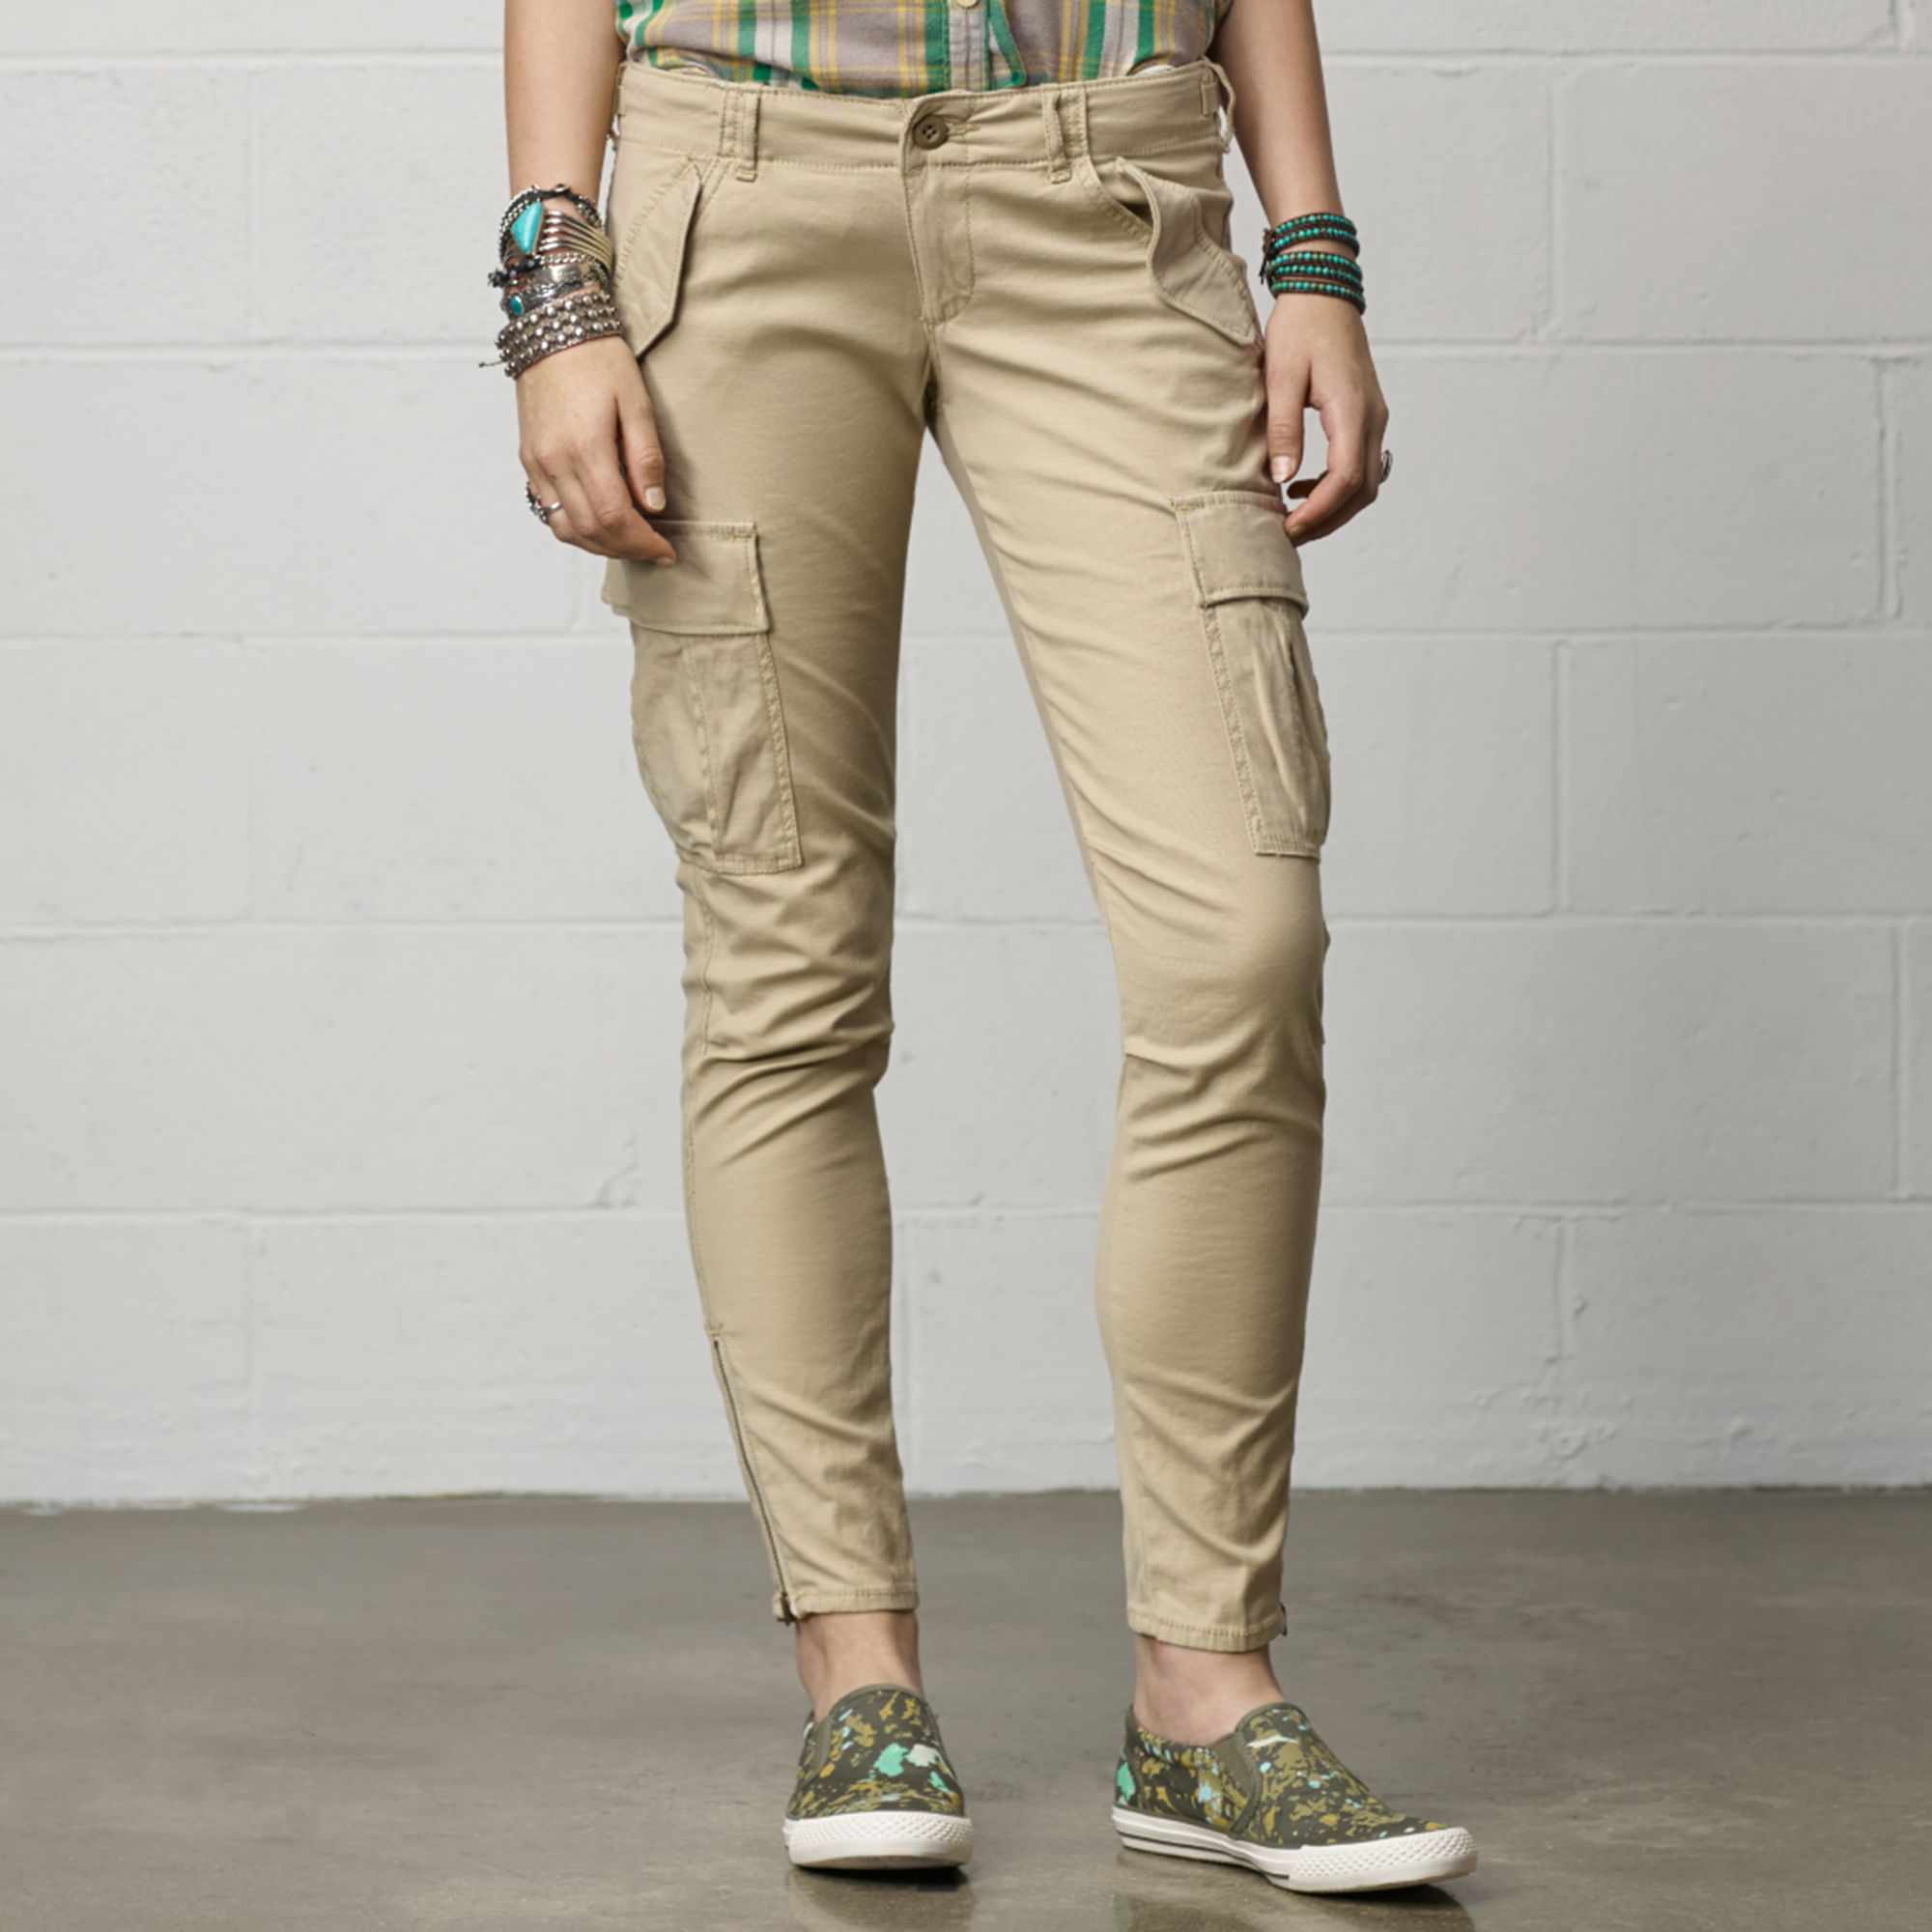 Perfect Womens Cropped Cargo Pants With Simple Minimalist In Canada U2013 Playzoa.com